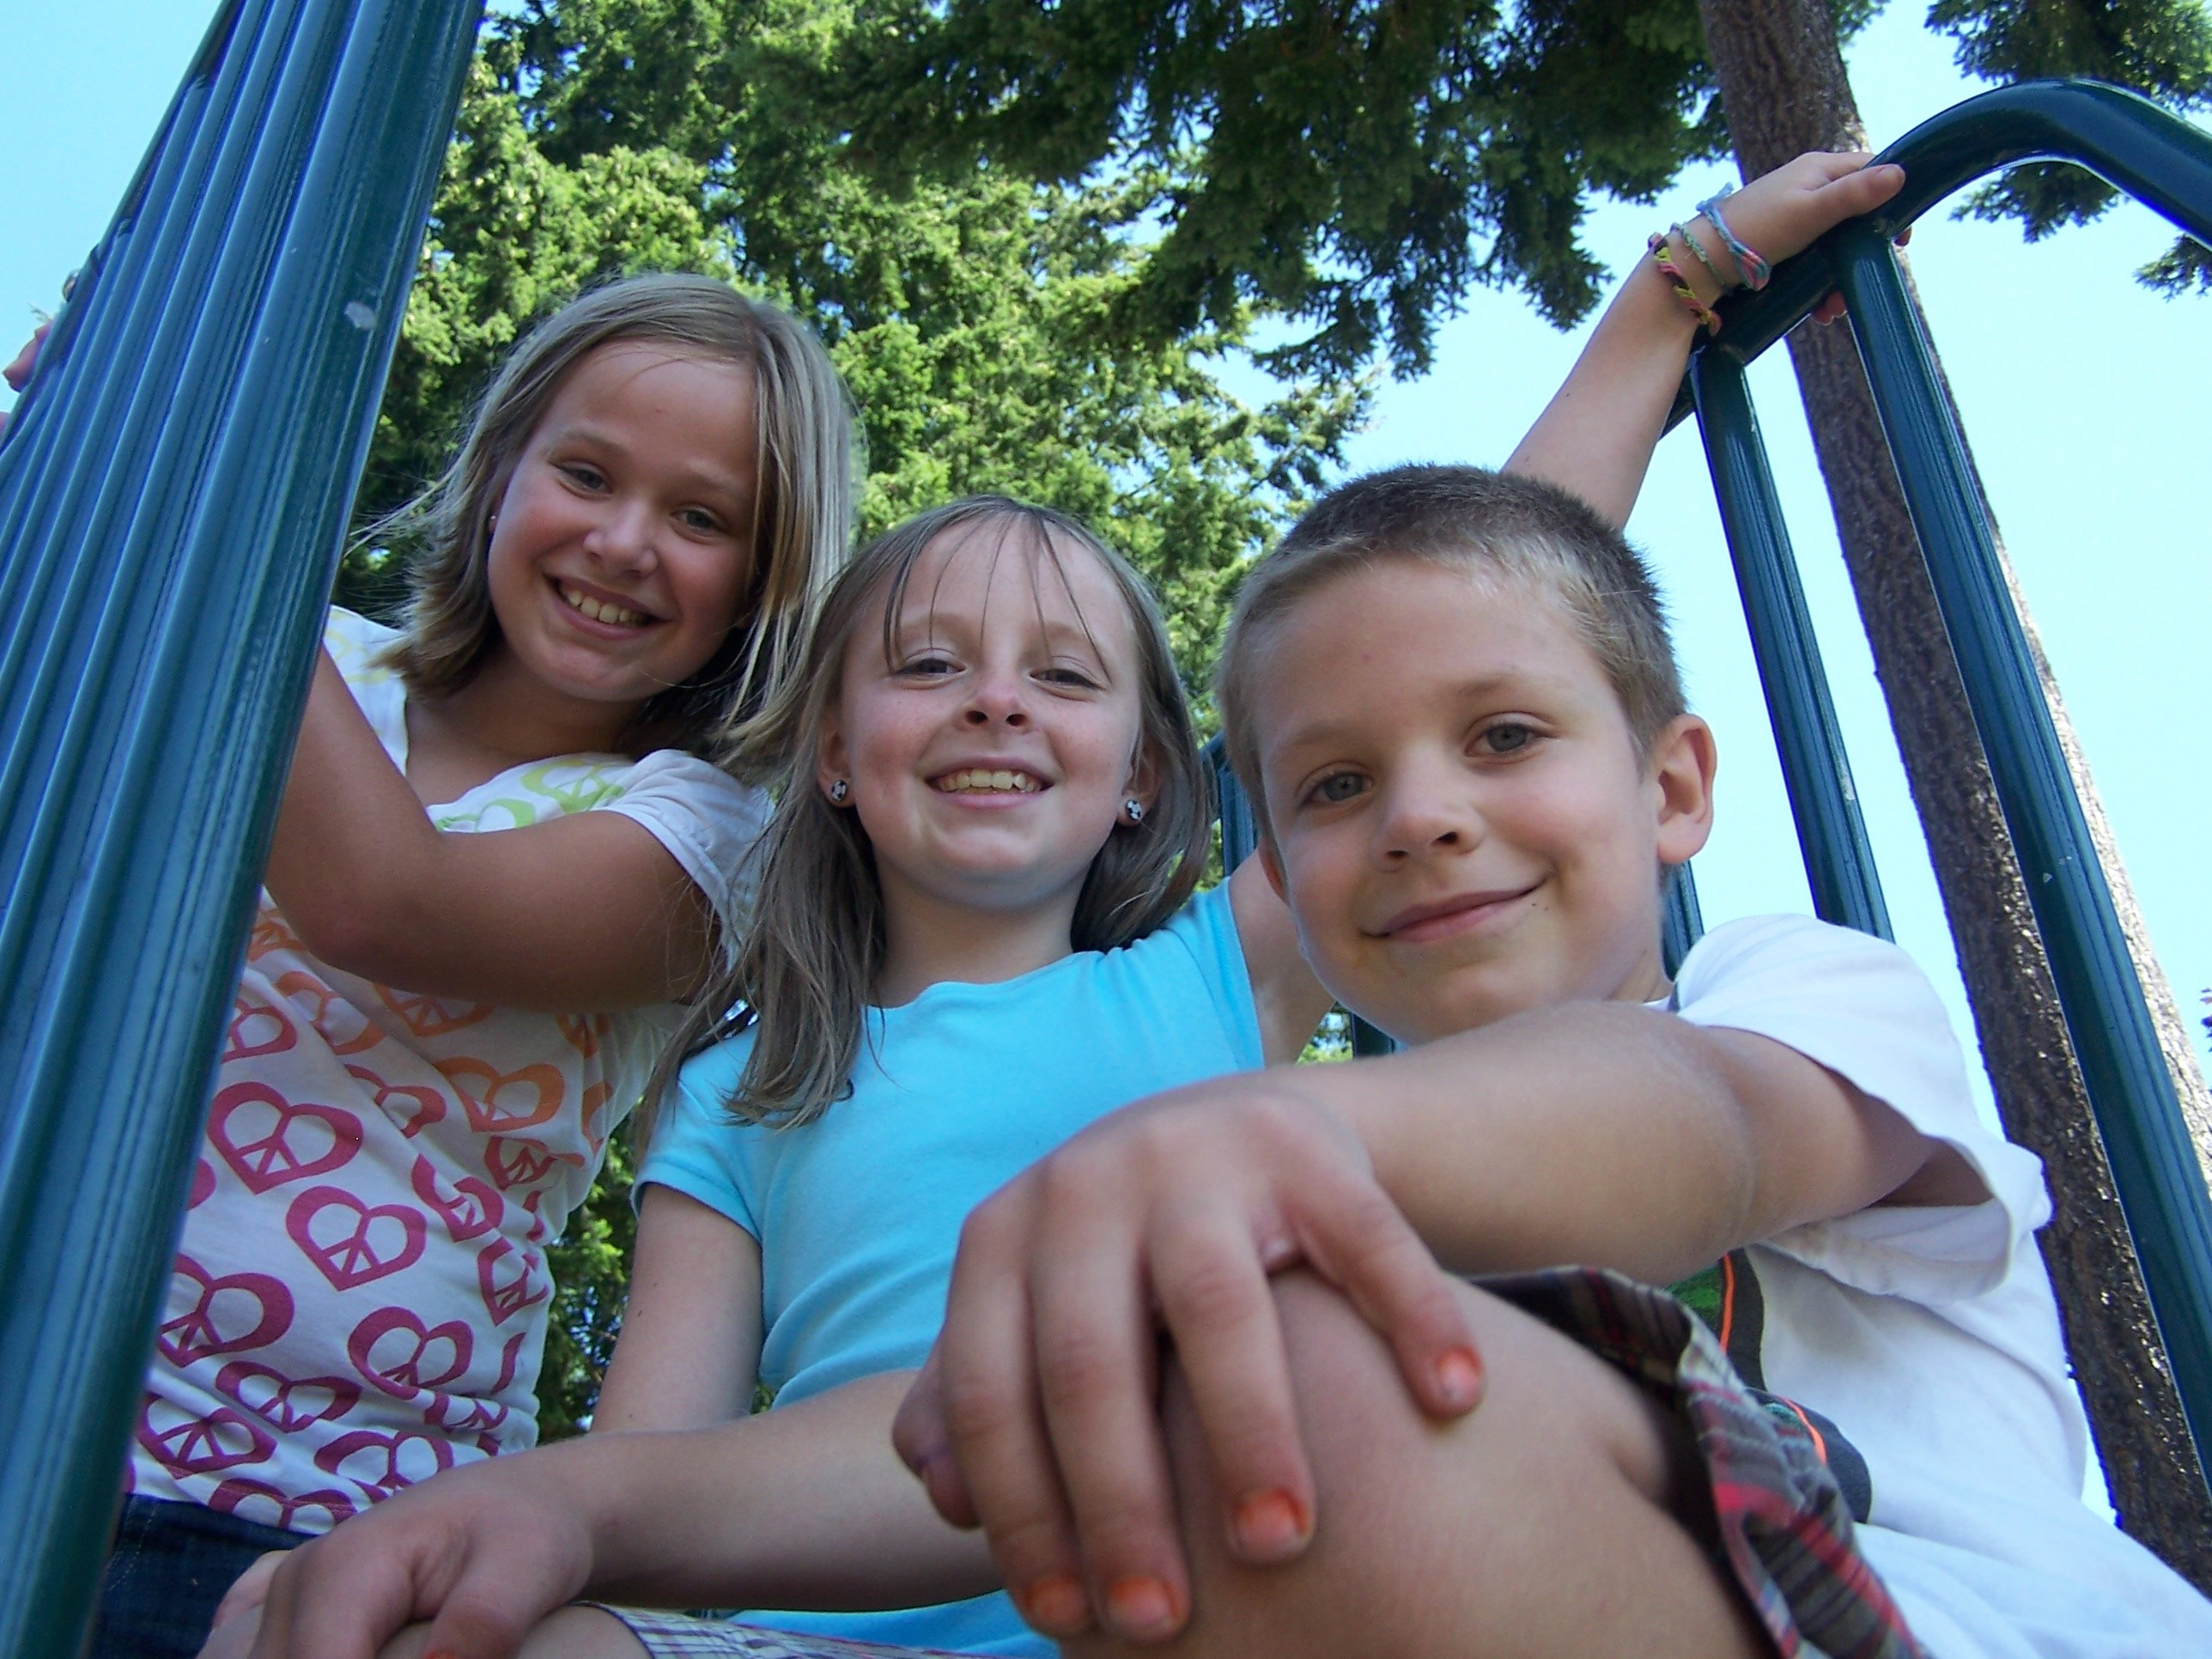 Two girls and boy at the top of playground slide